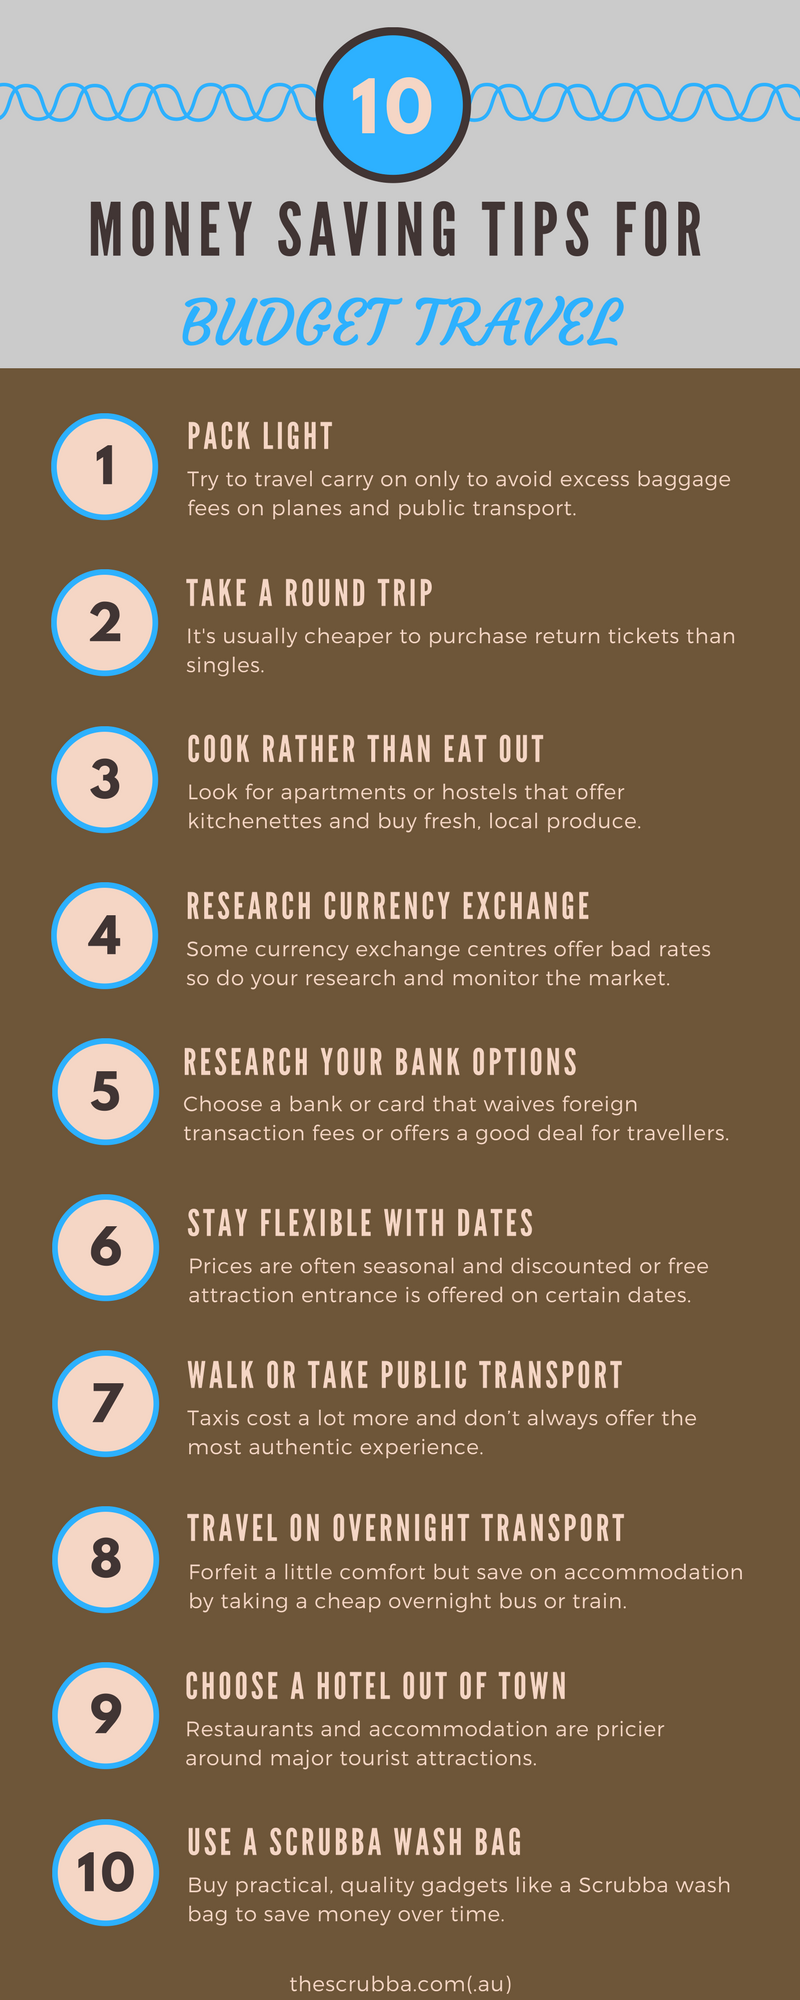 10 Money Saving Tips for Budget Travel Infographic